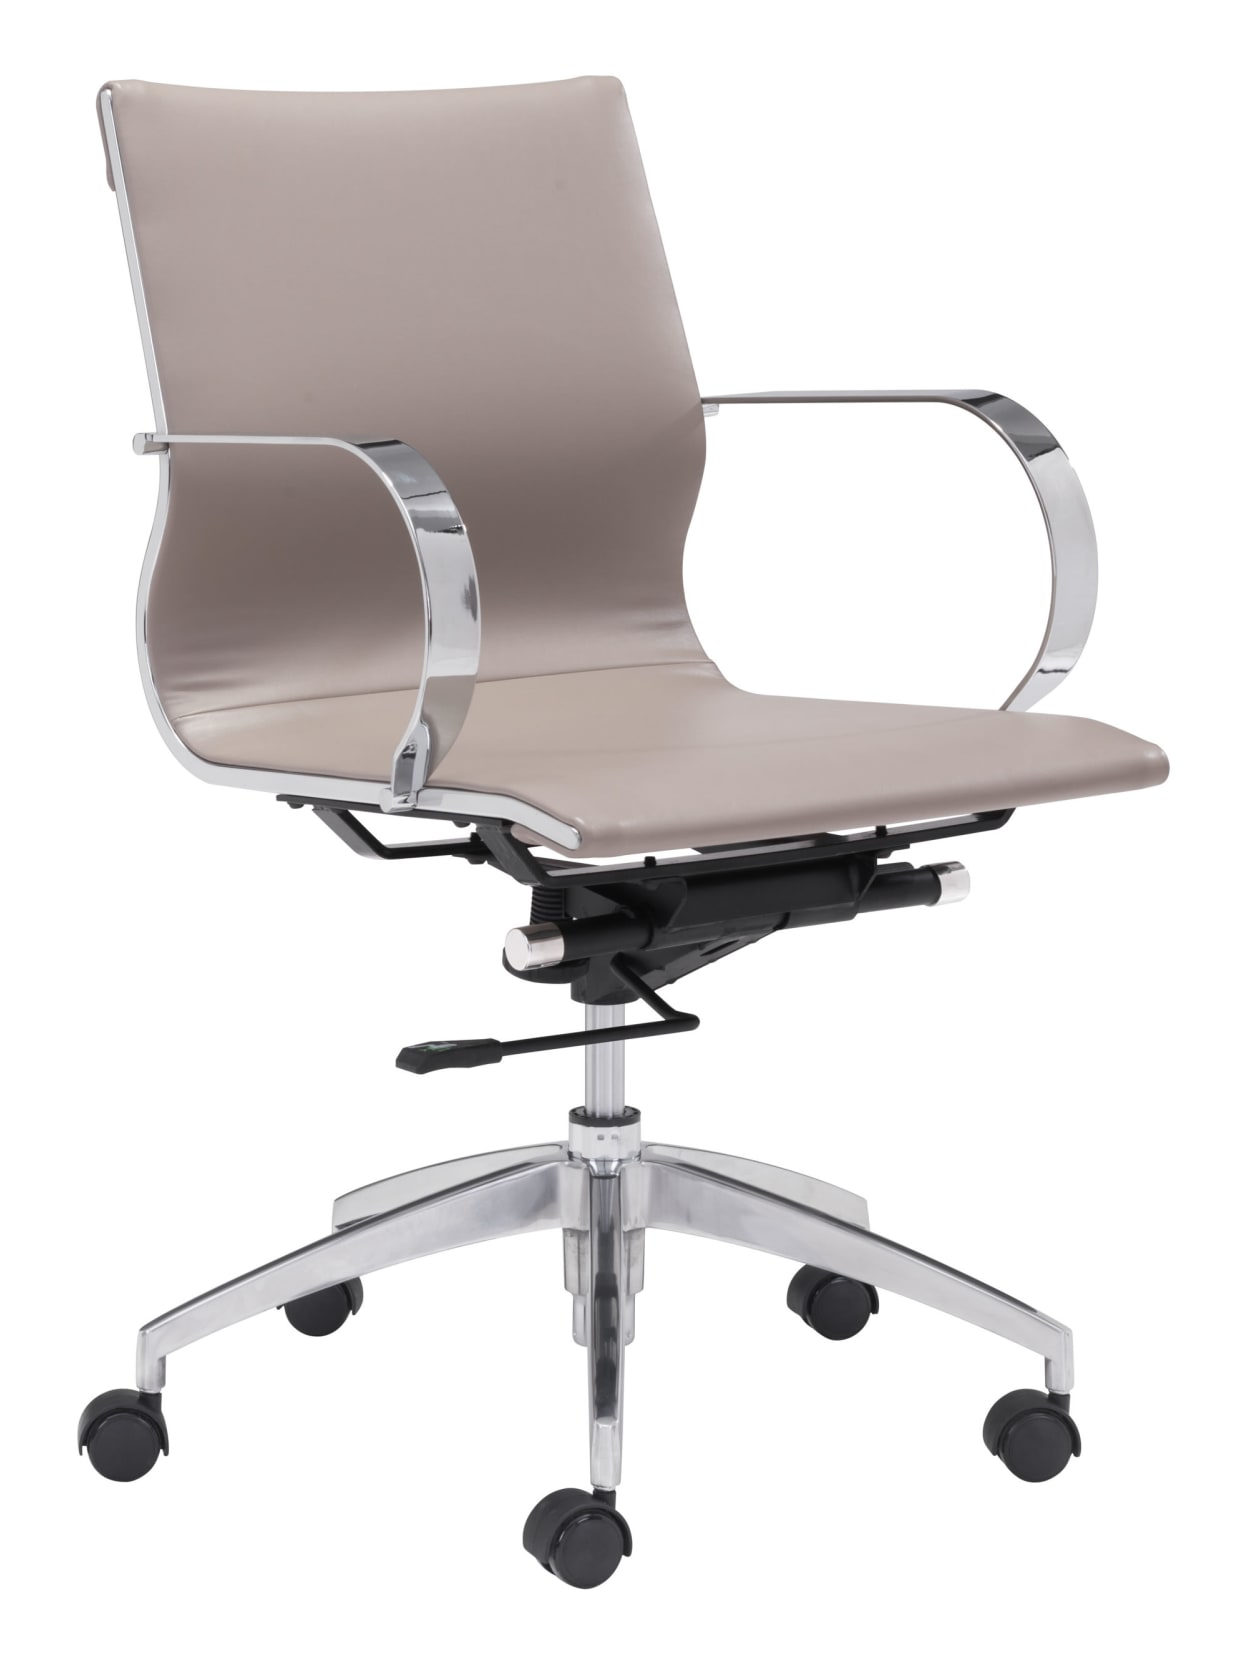 Zuo Glider Low Back Chair TaupeChrome - Office Depot